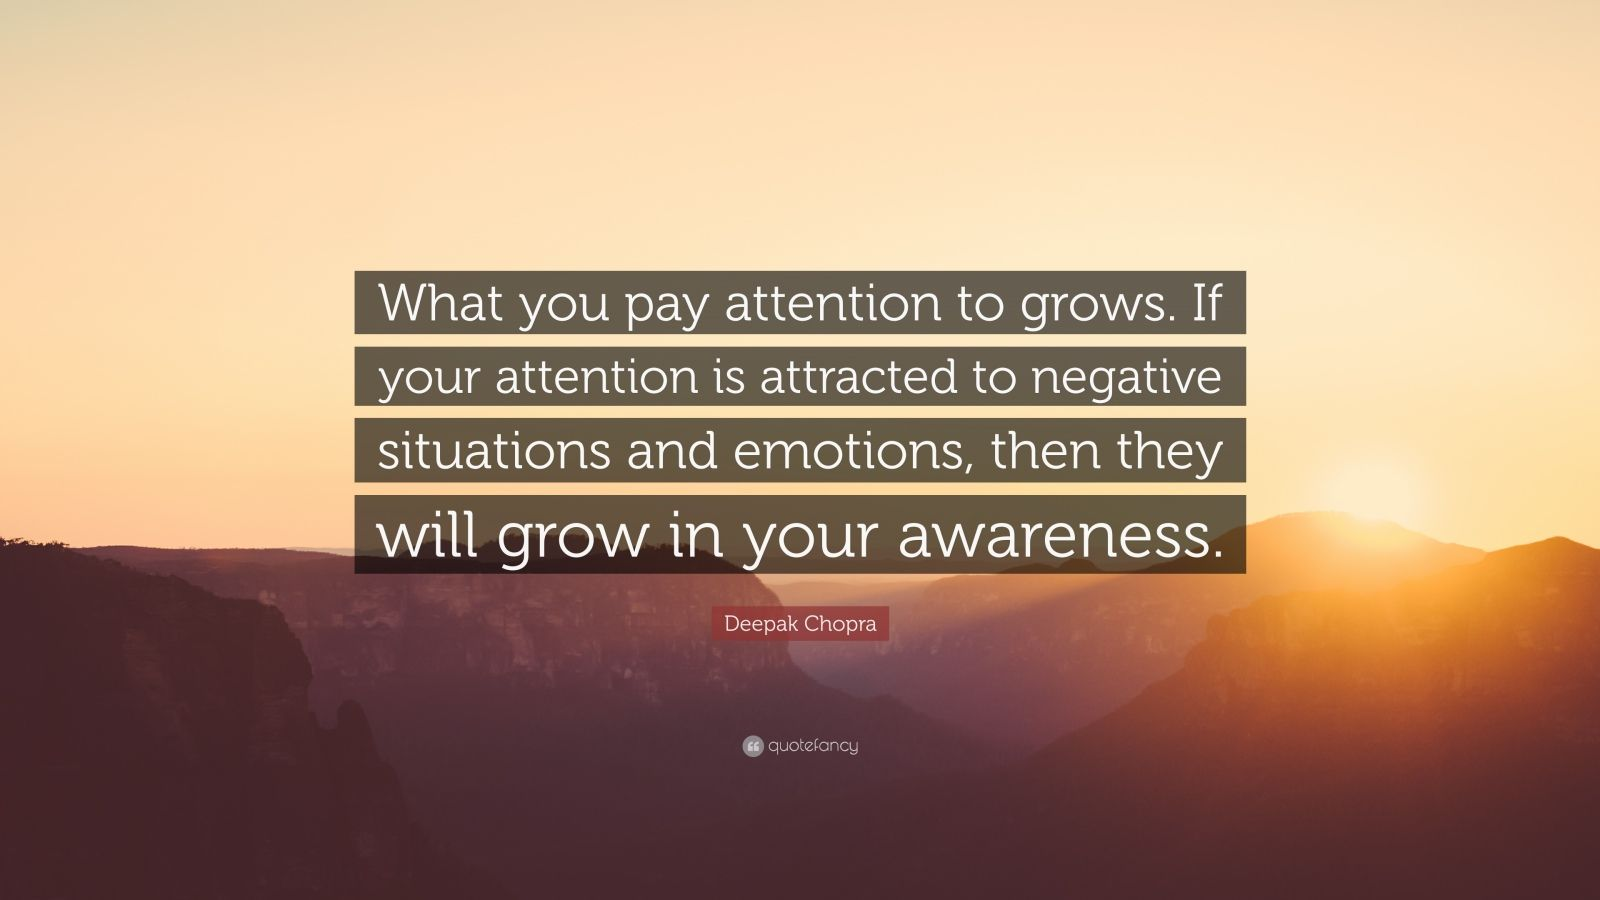 """Deepak Chopra Quote: """"What you pay attention to grows. If your attention is attracted to negative situations and emotions, then they will grow in your awareness."""""""